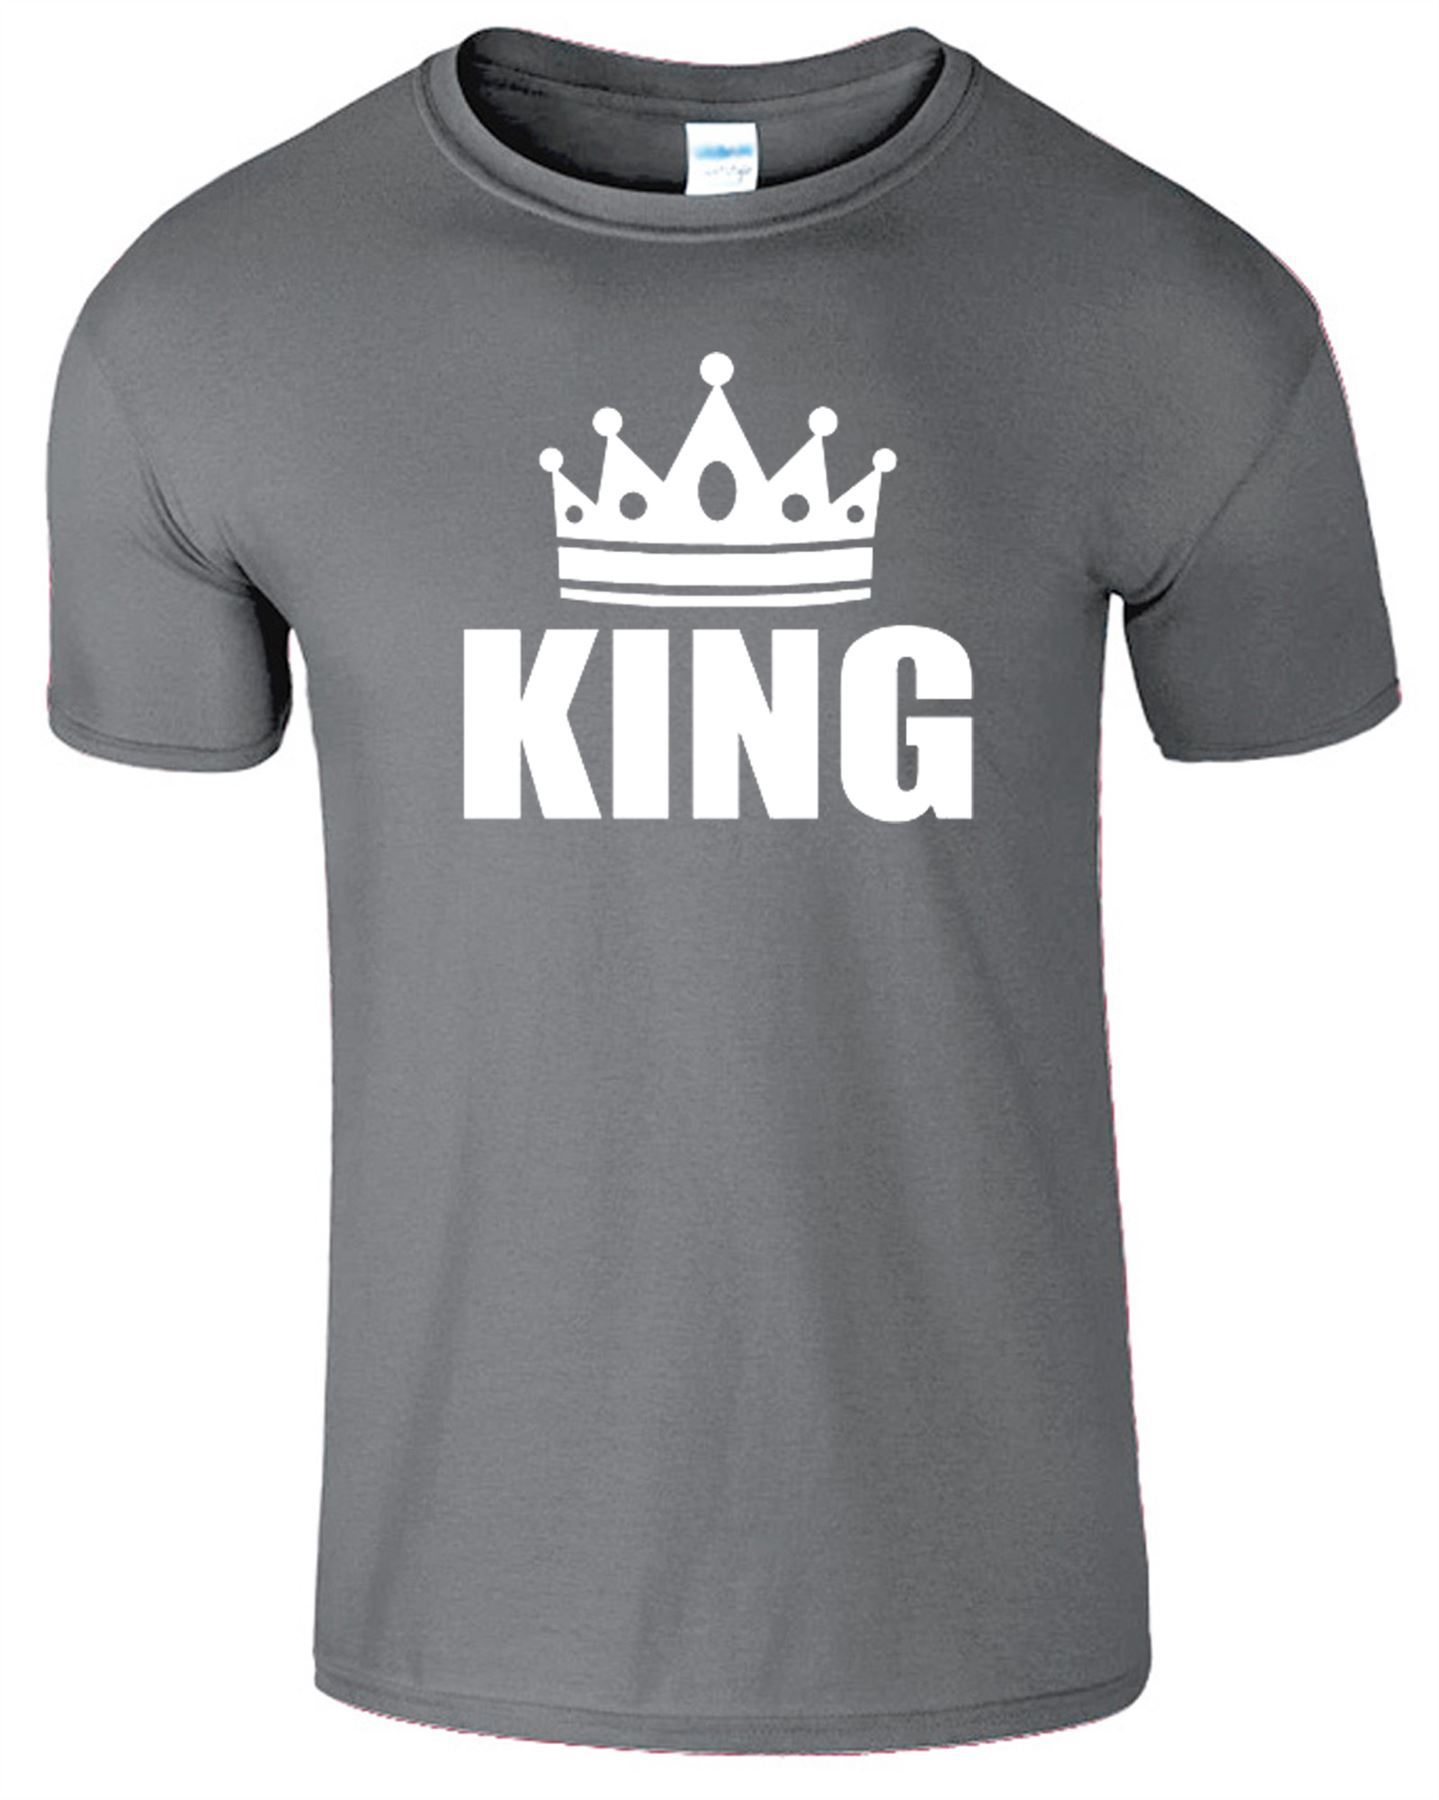 Black queen t shirt - King And Queen T Shirt Mens Womens Crown